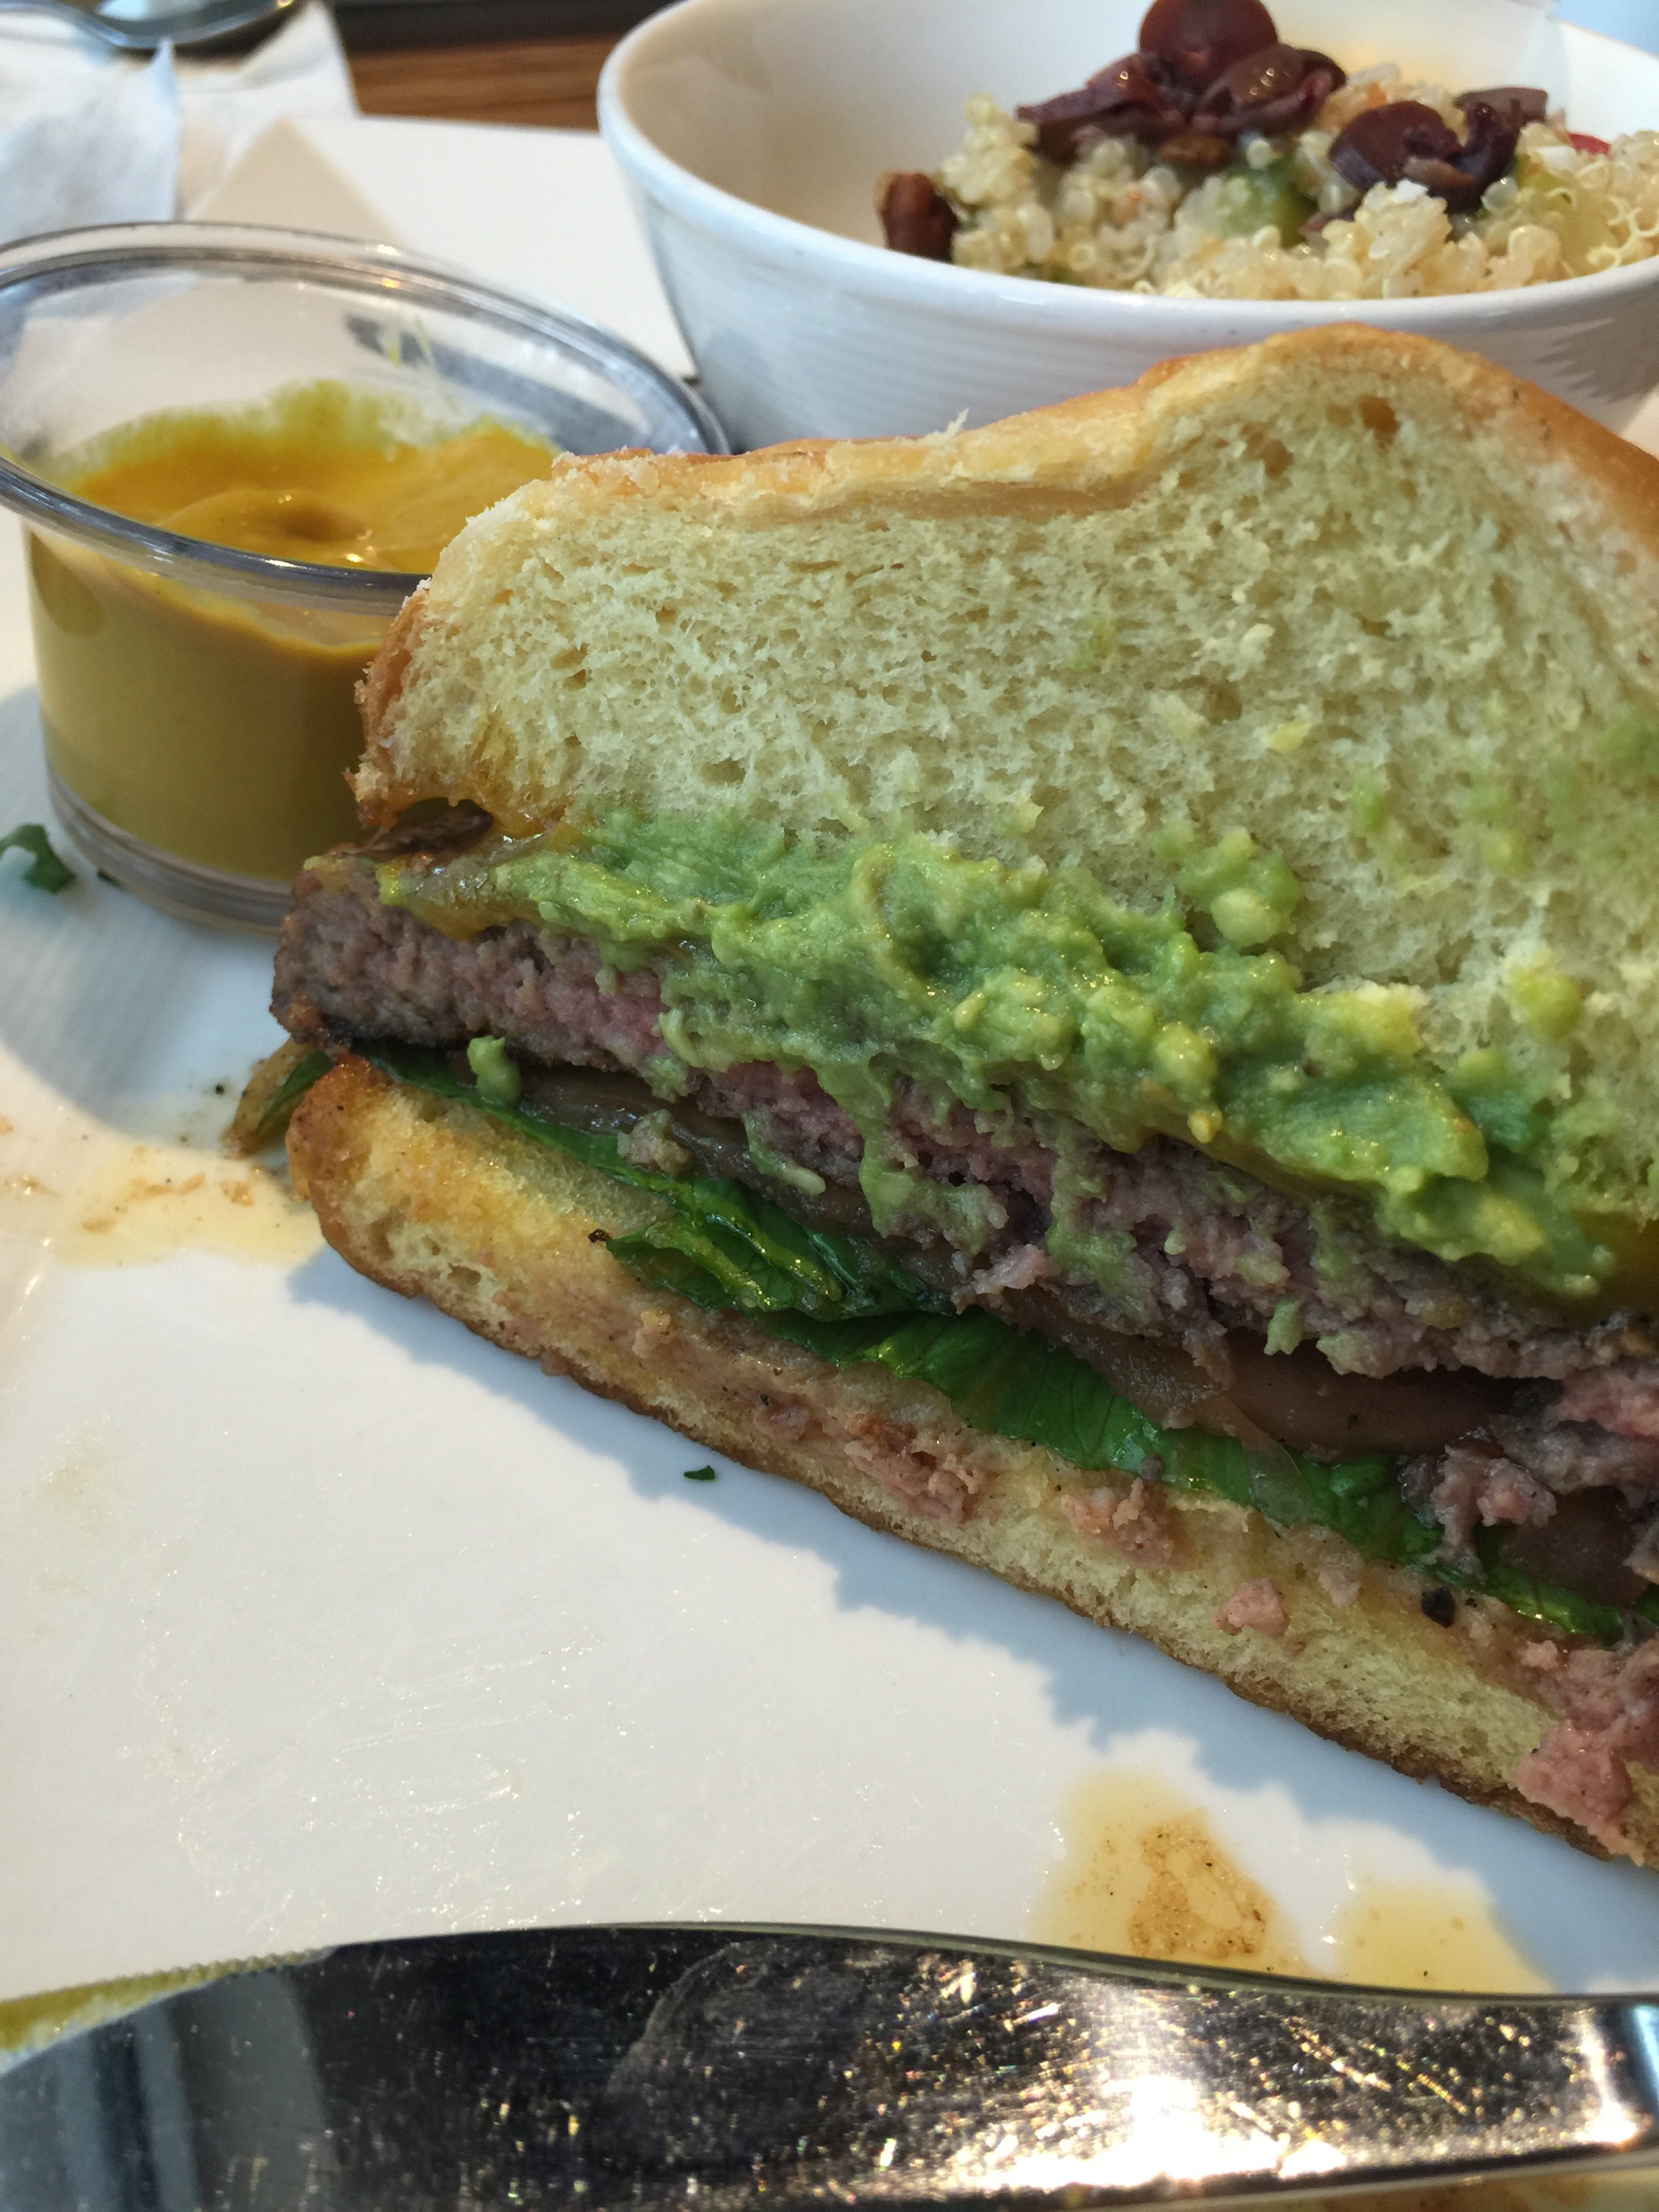 Eat this entire burger and you will need to take a nap!